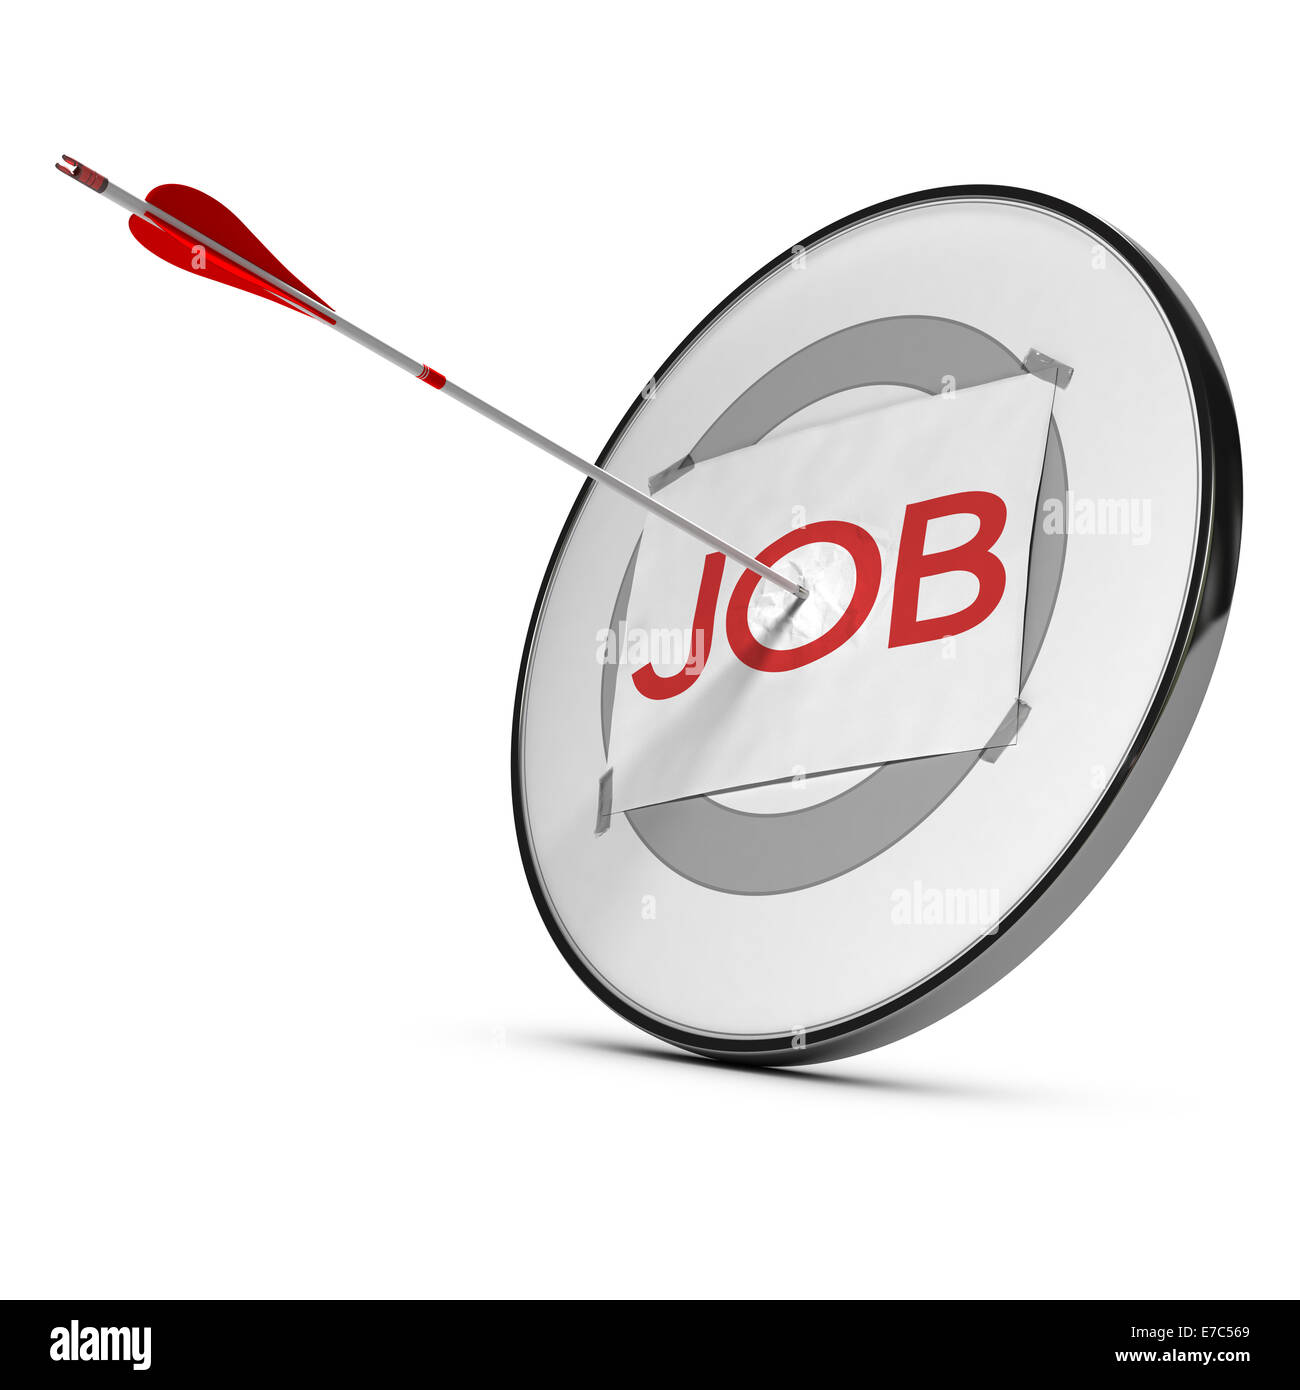 target with the word job and one arrow hitting the center of the o letter, red tones and white background, concept - Stock Image